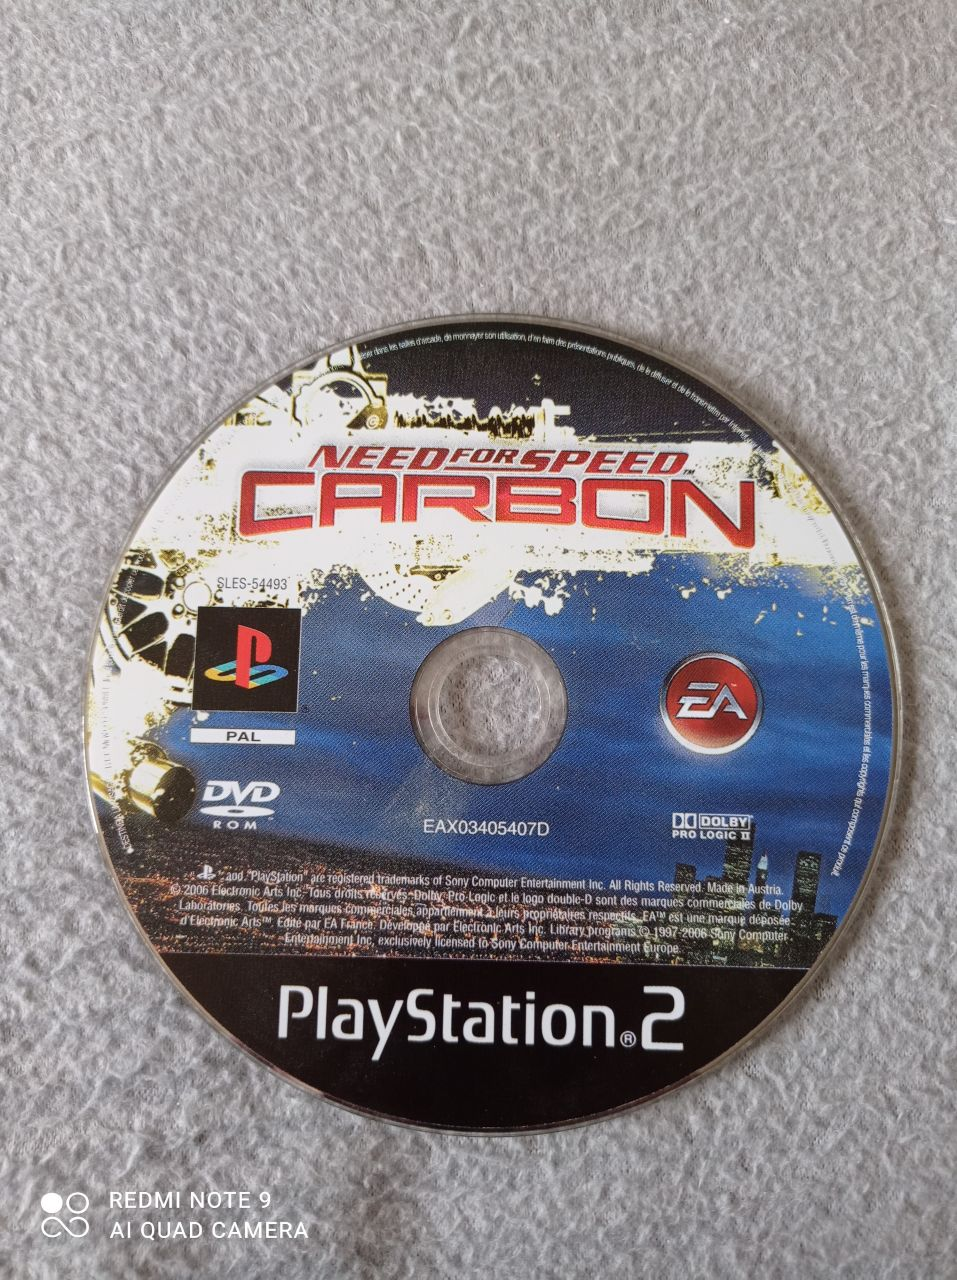 Image article Sony - Playstation 2 - Need for speed - Carbon